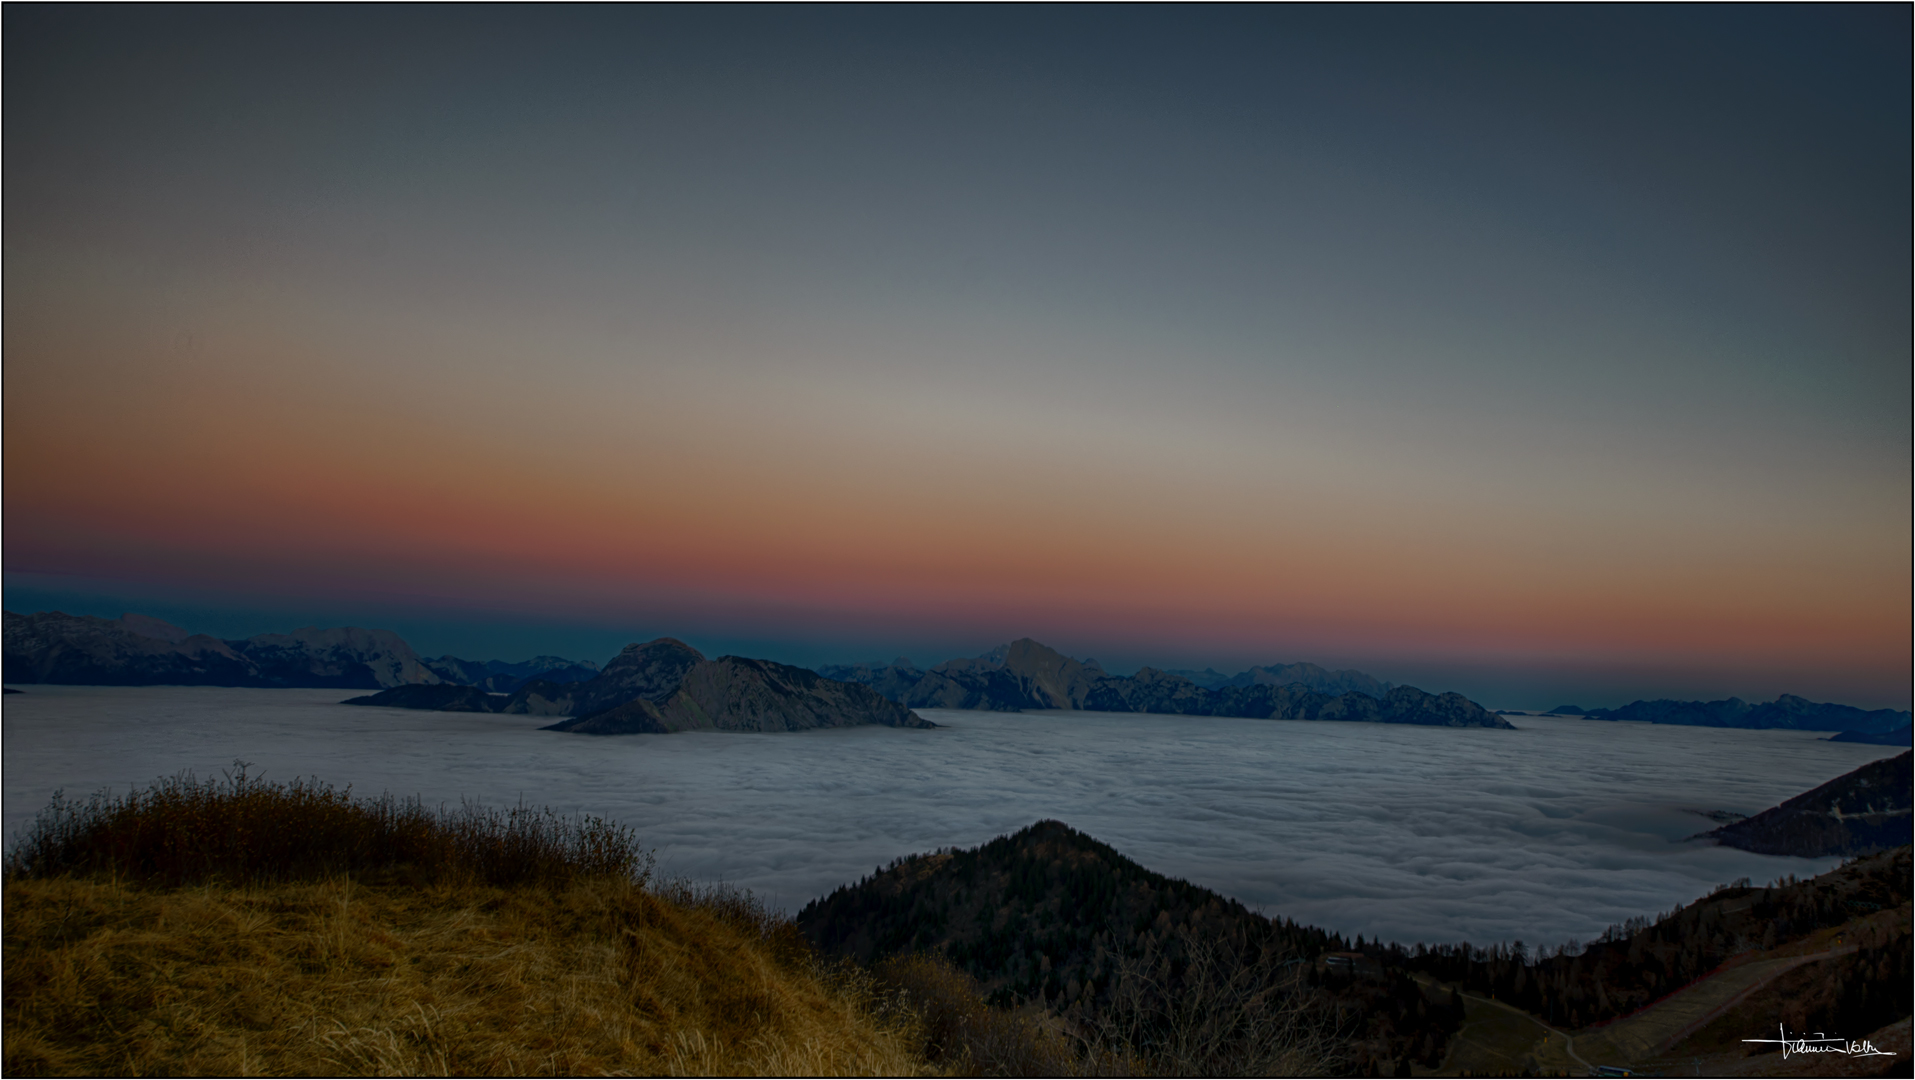 Twilight on the sea (of clouds)...